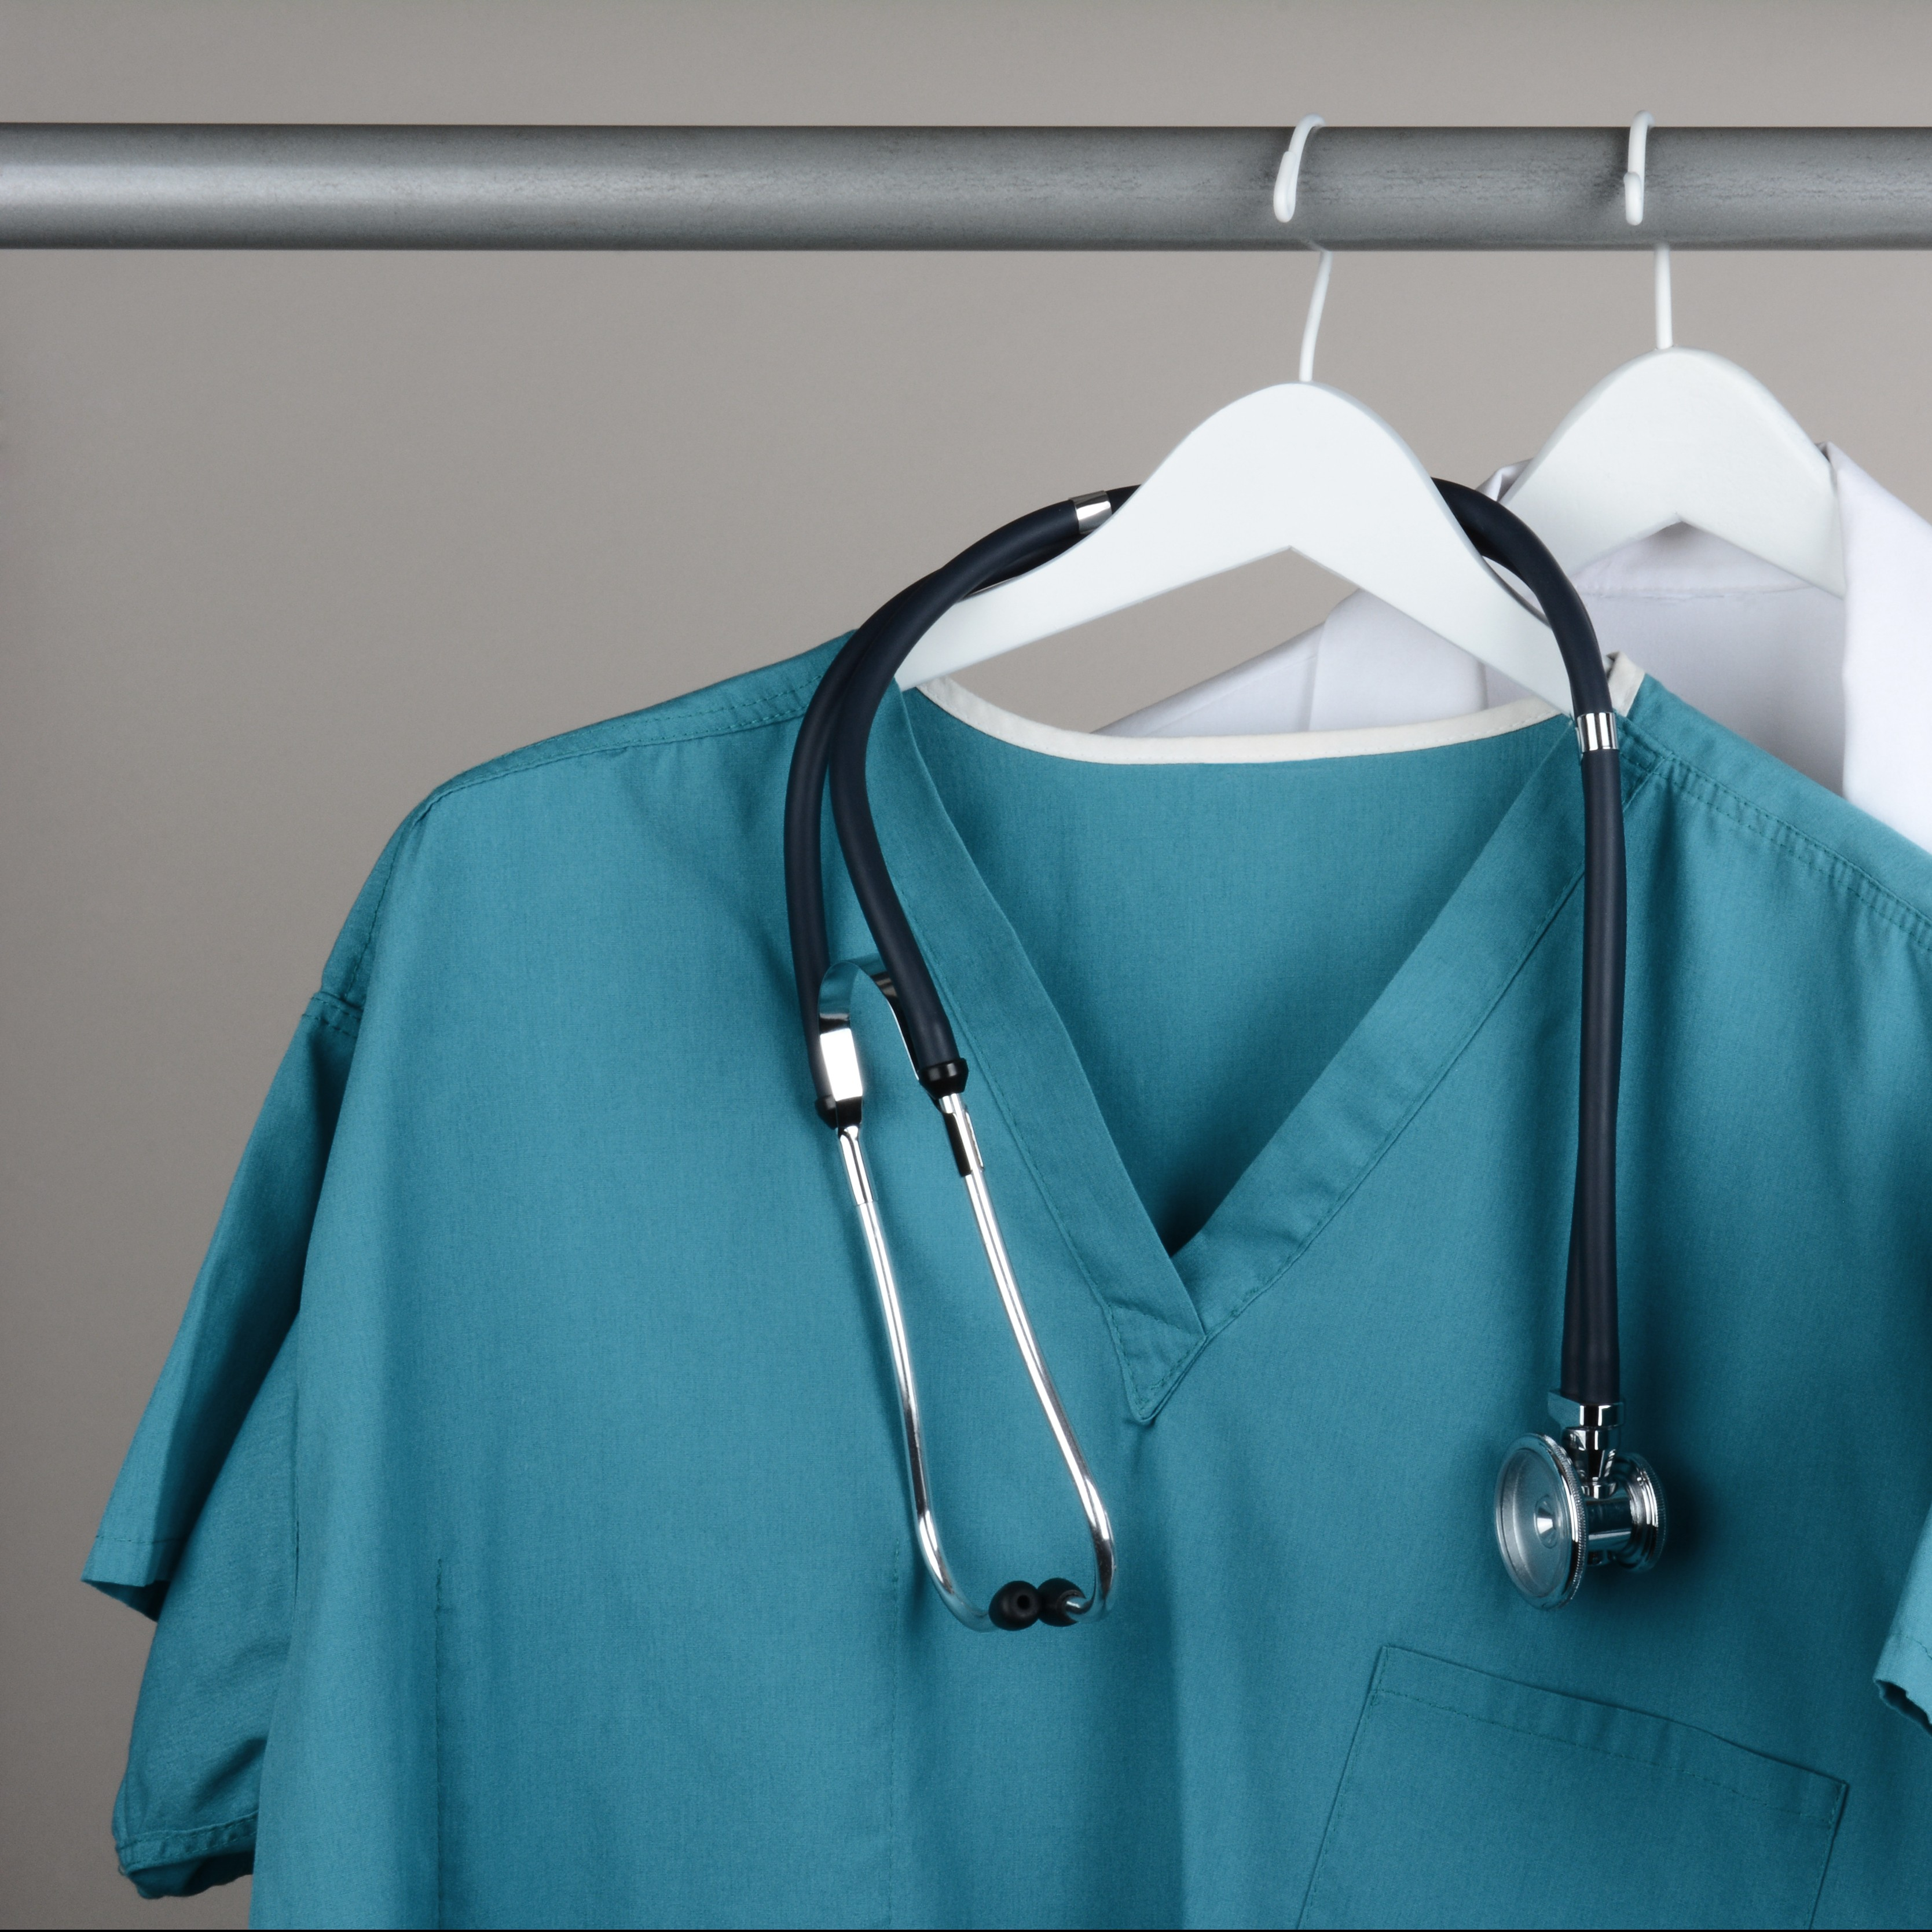 Closeup of a doctor's scrubs with stethoscope and lab coat on ha